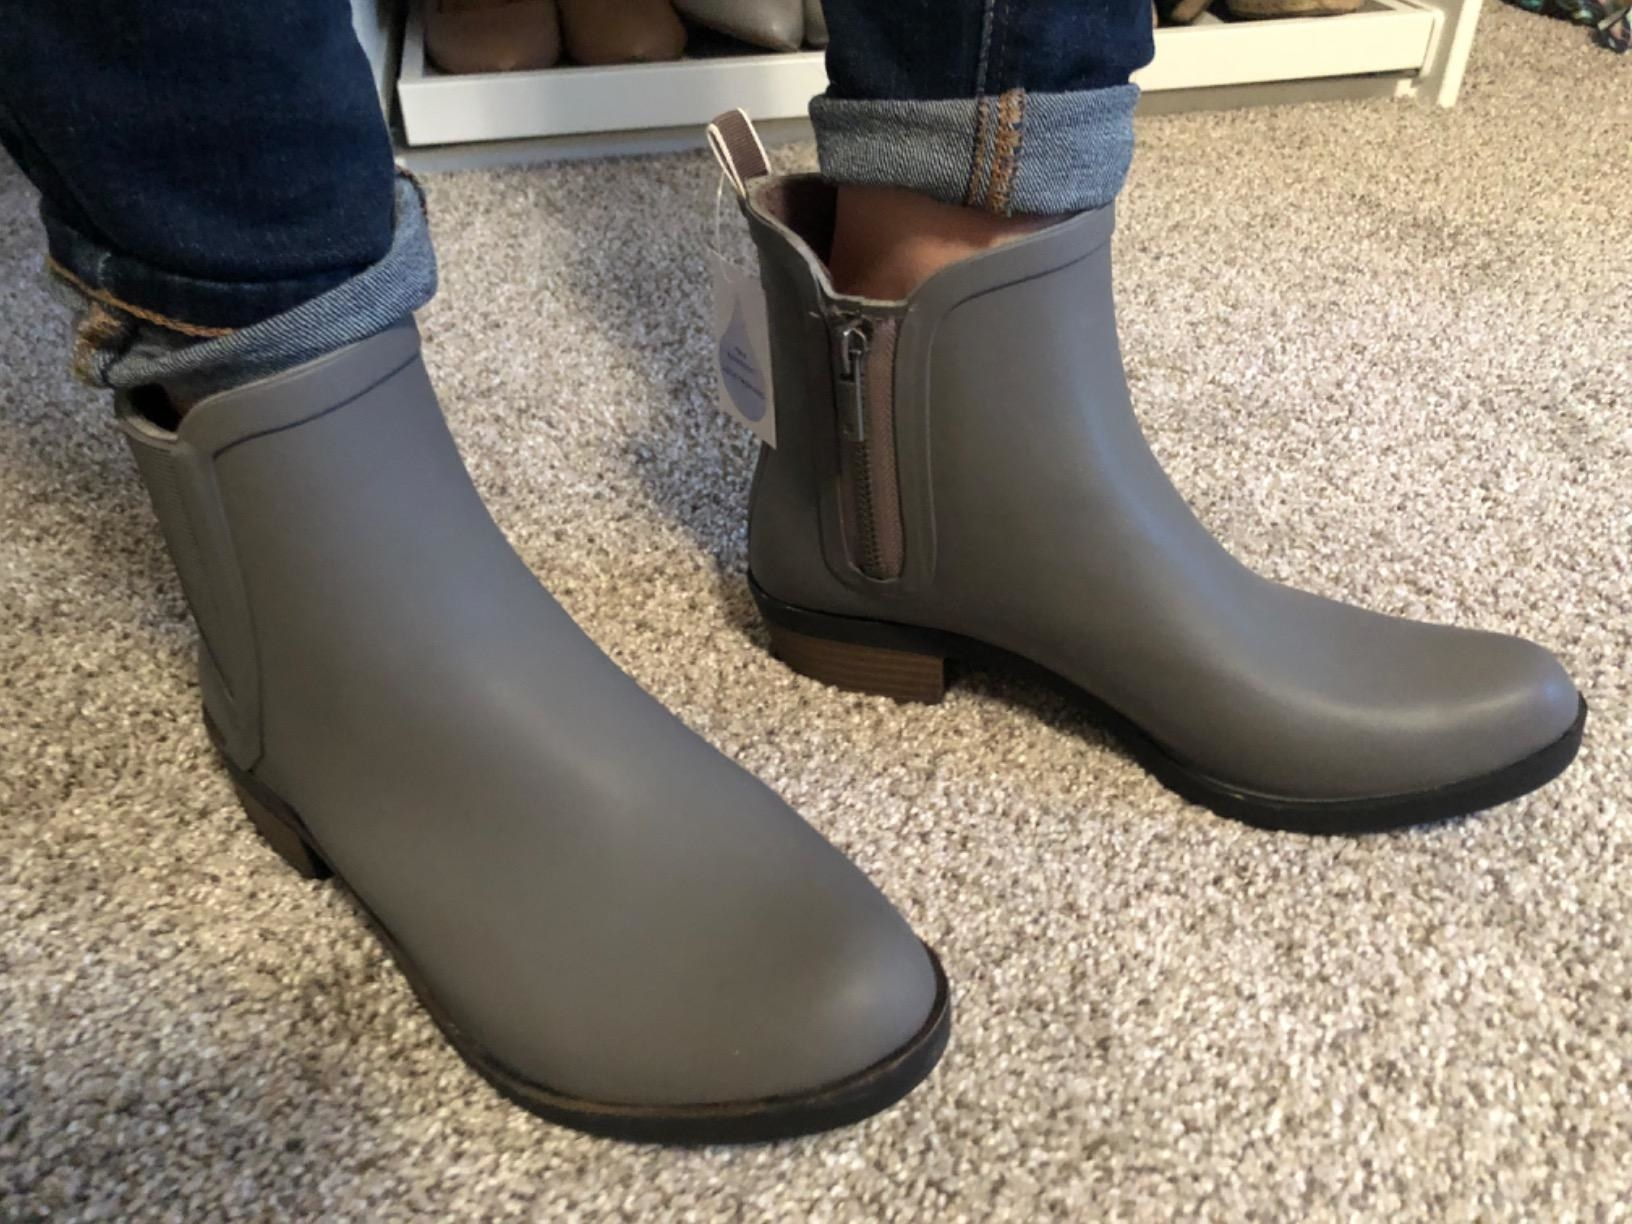 A reviewer wearing the ankle-length rubber boots in gray with a zipper on the side